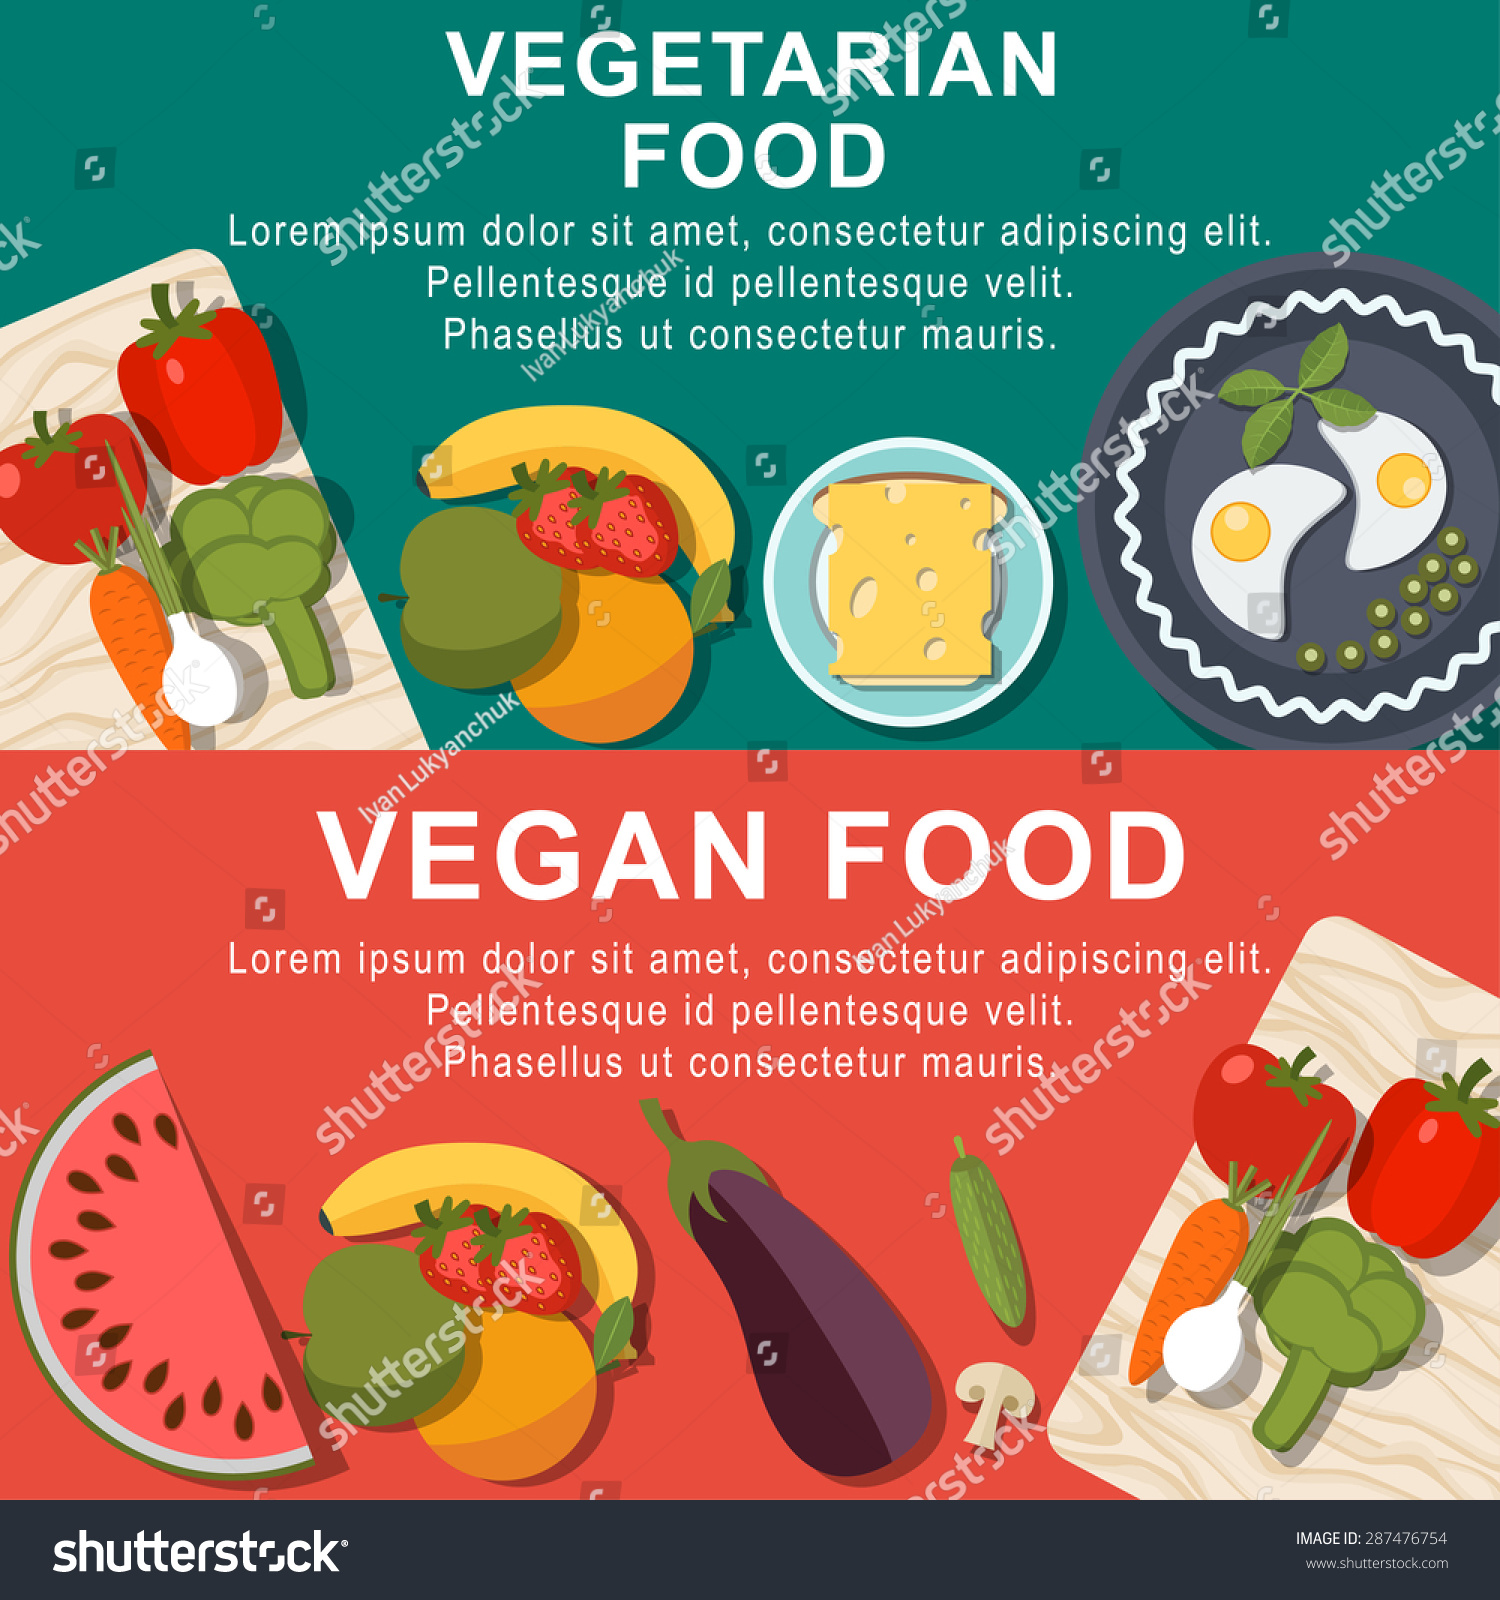 Flat Vegetarian Vegan Foods Meal Banner Stock Vector Royalty Free 287476754